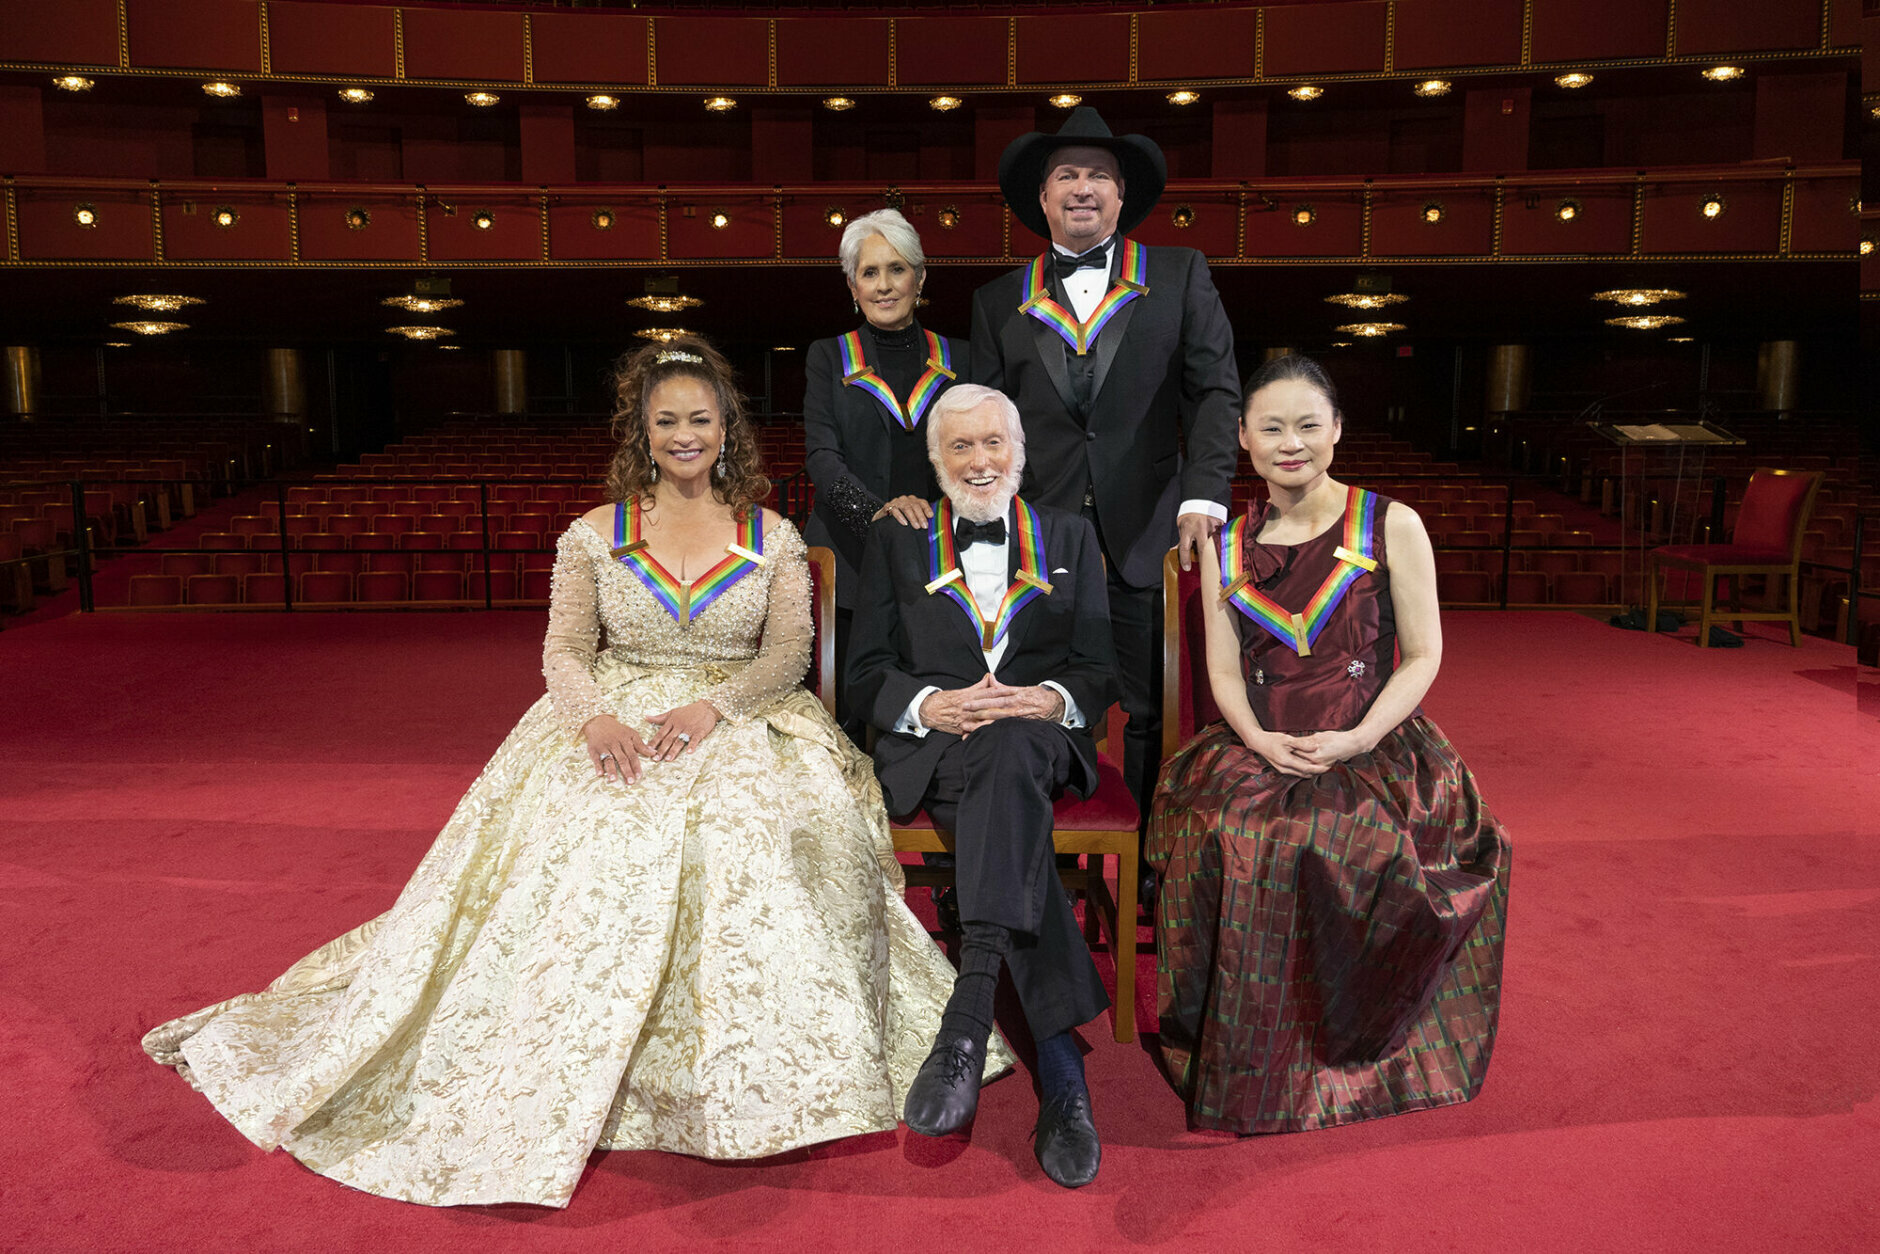 <p>This year&#8217;s honorees &#8212; Debbie Allen, Joan Baez, Dick Van Dyke, Garth Brooks and Midori &#8212; pose at the Kennedy Center. (Michele Crowe/CBS)</p>